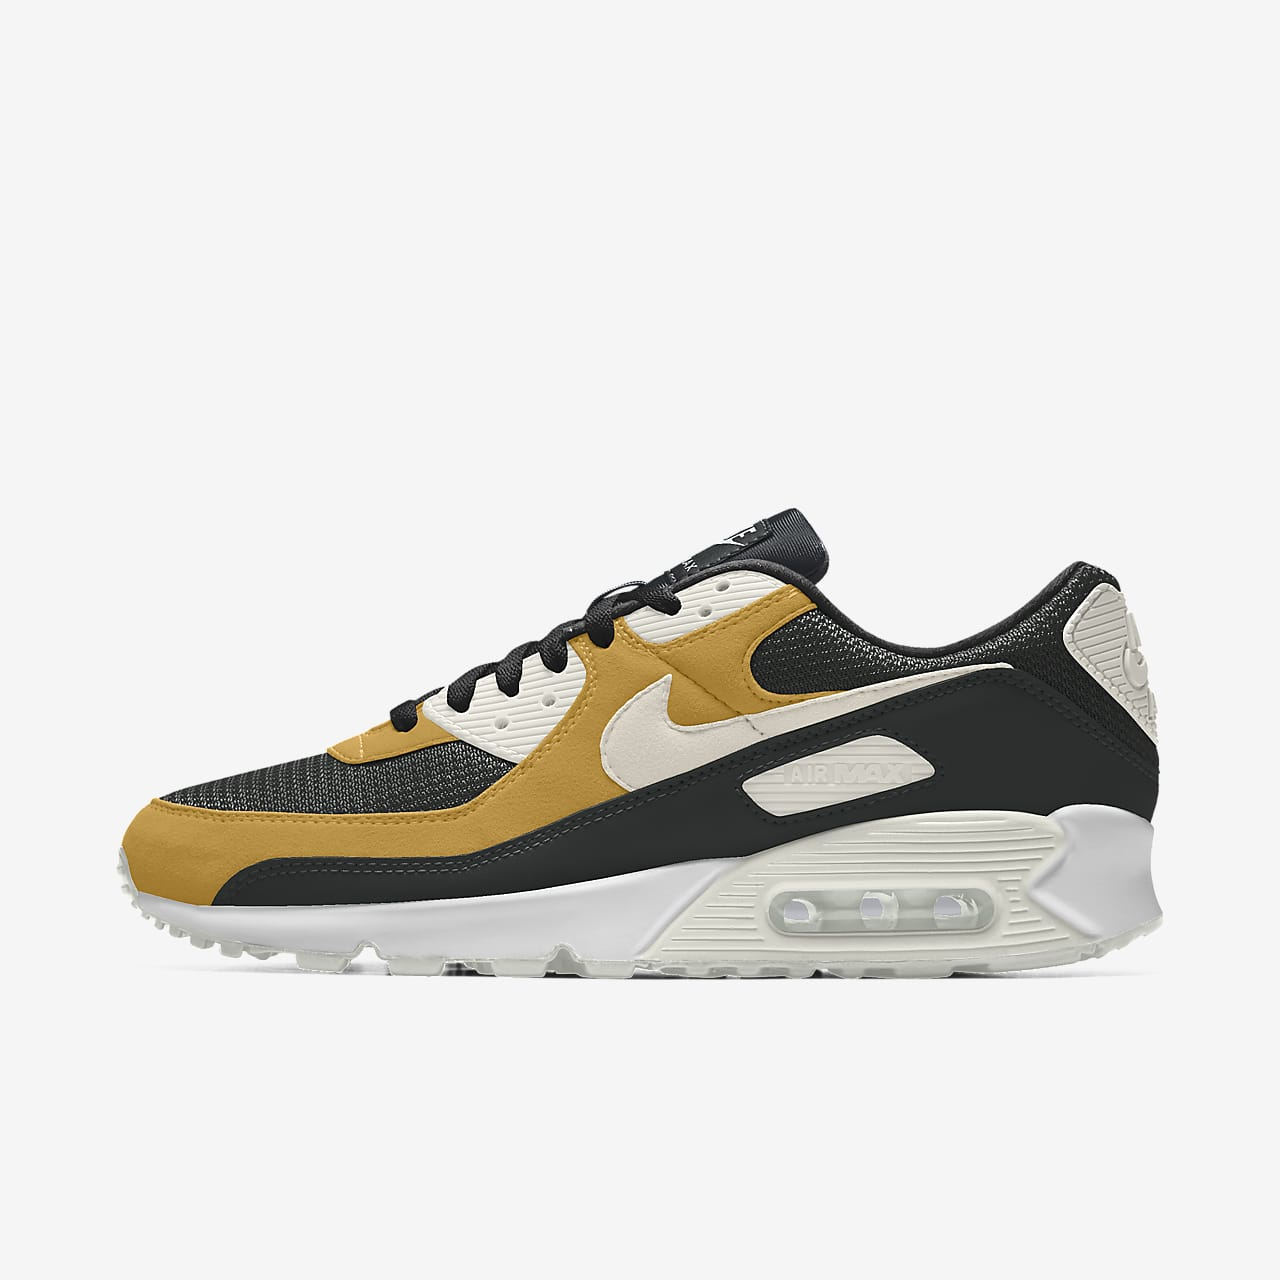 Specialdesignad sko Nike Air Max 90 By You för kvinnor